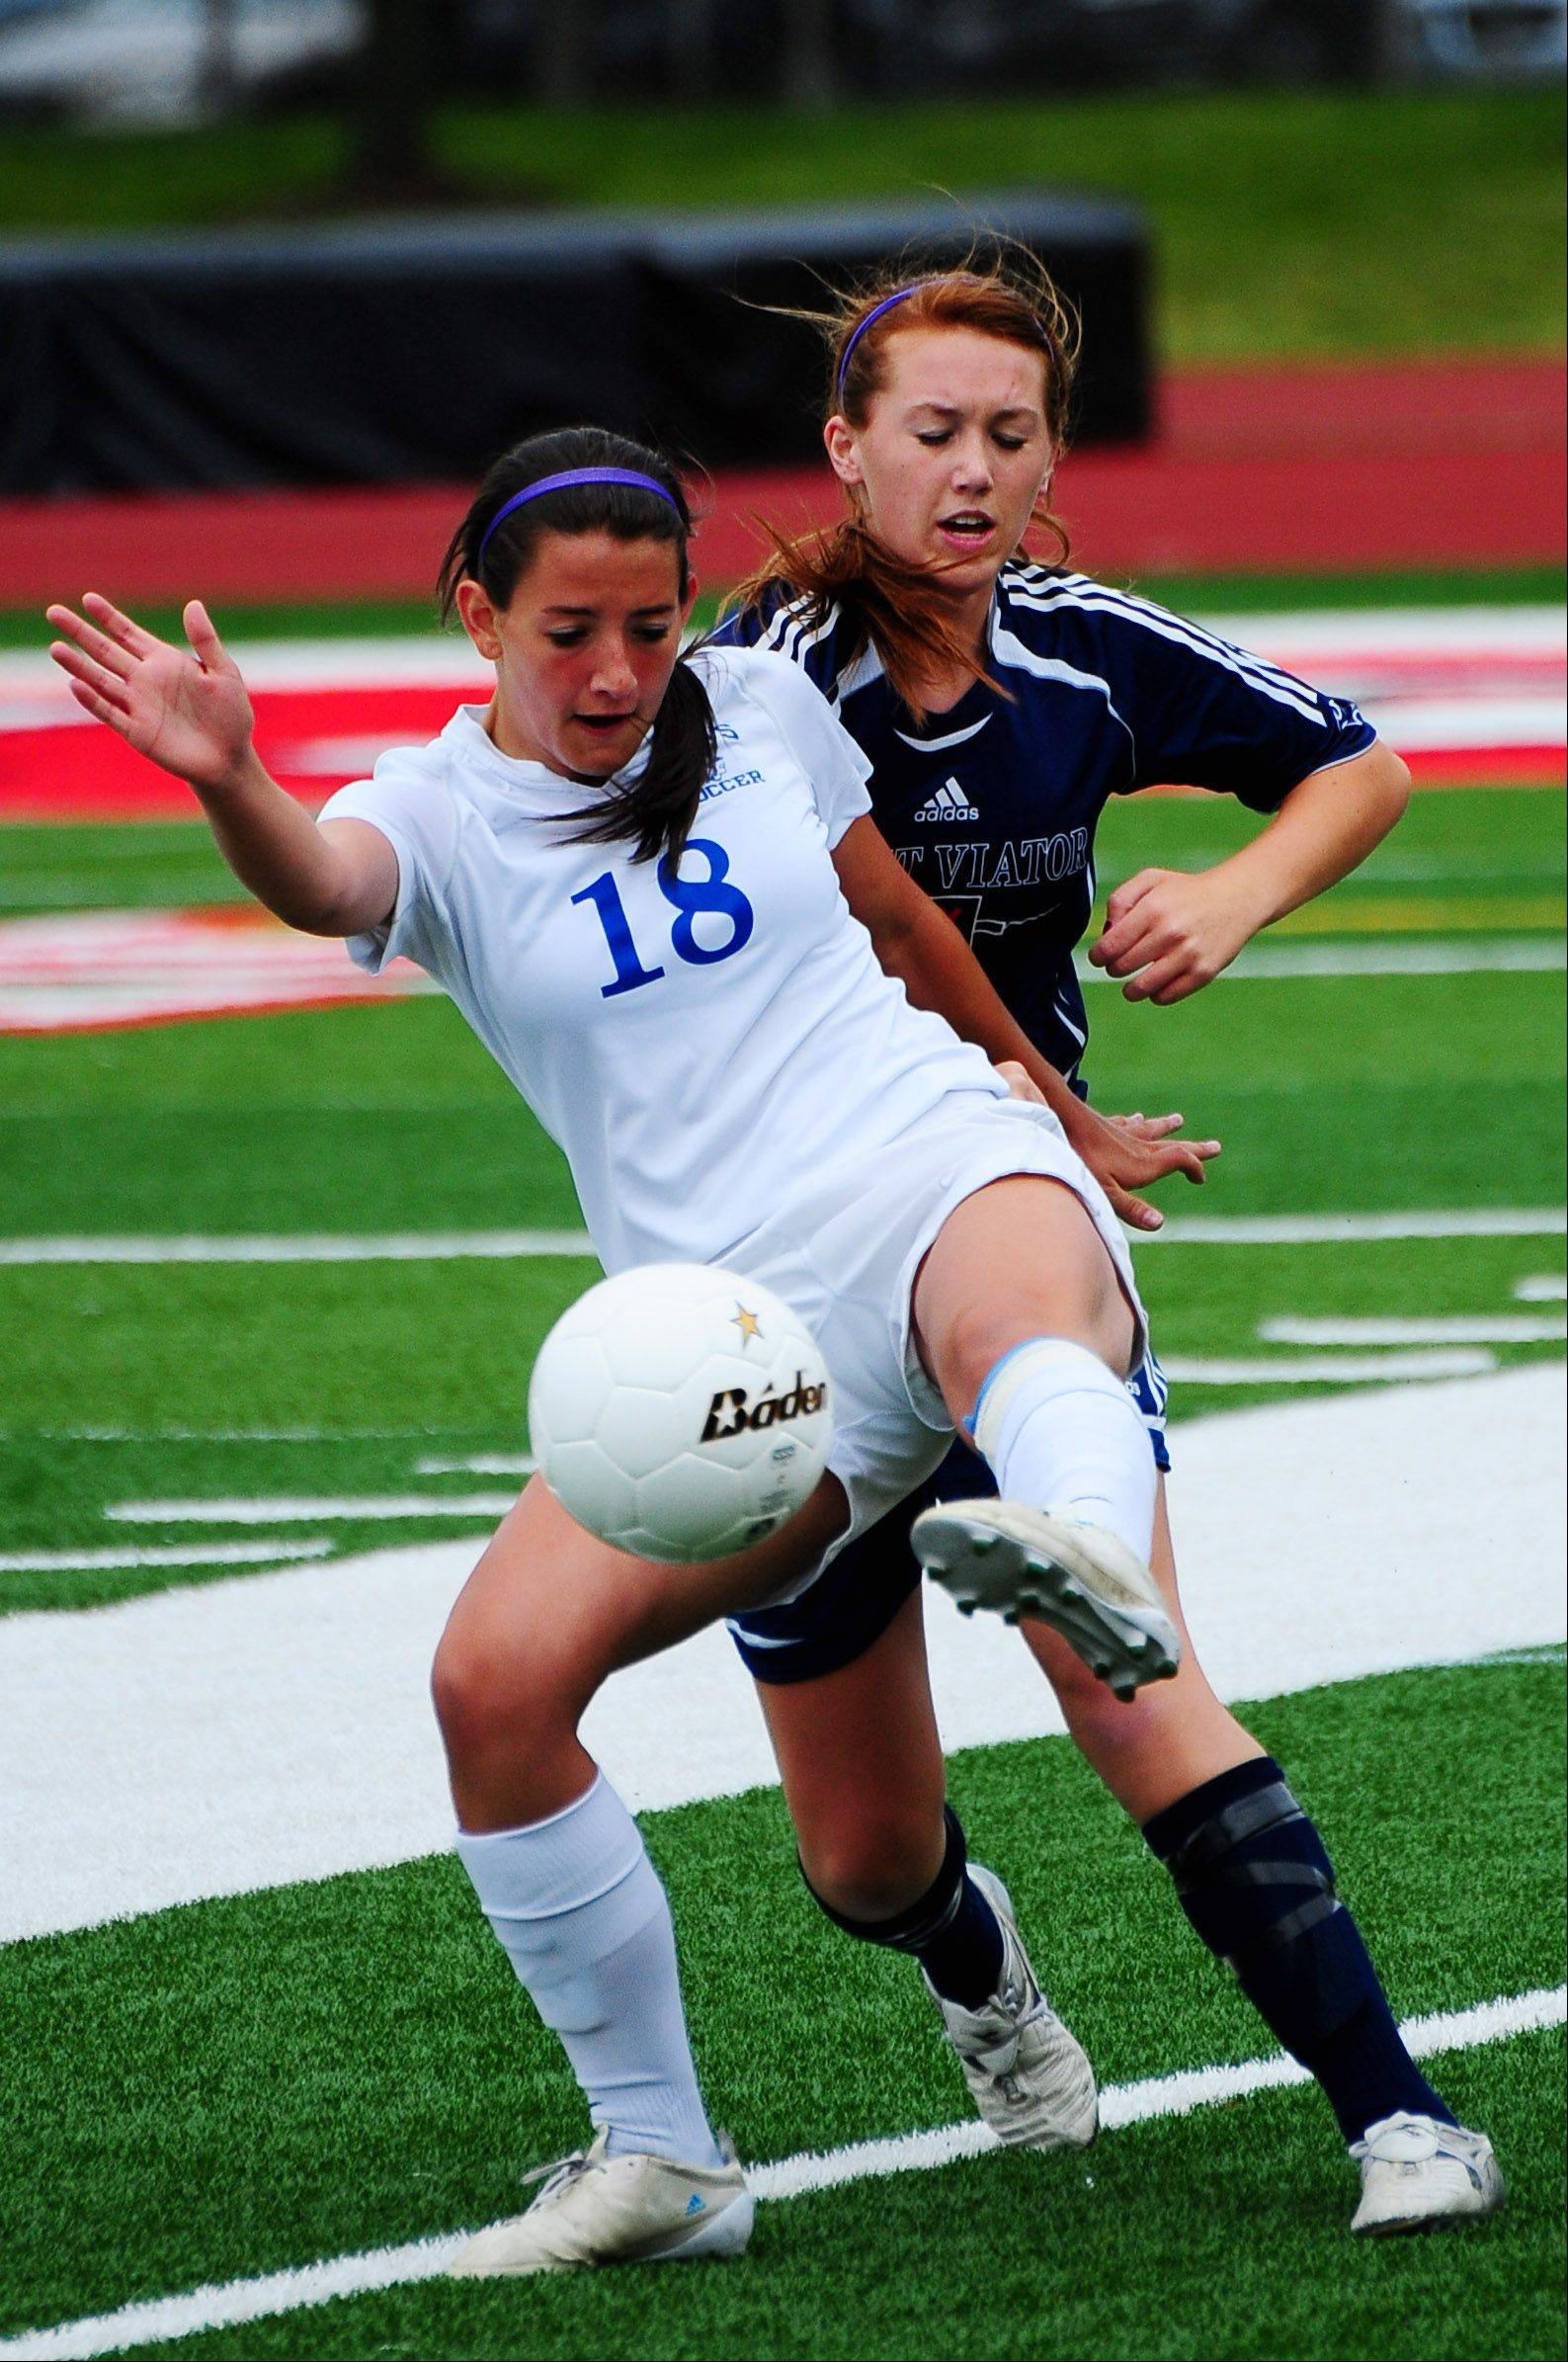 St. Francis forward Kaity Bucaro crosses the ball before a St. Viator defender can steal it away from her during the Class 2A girls soccer semifinal on Friday at North Central College.